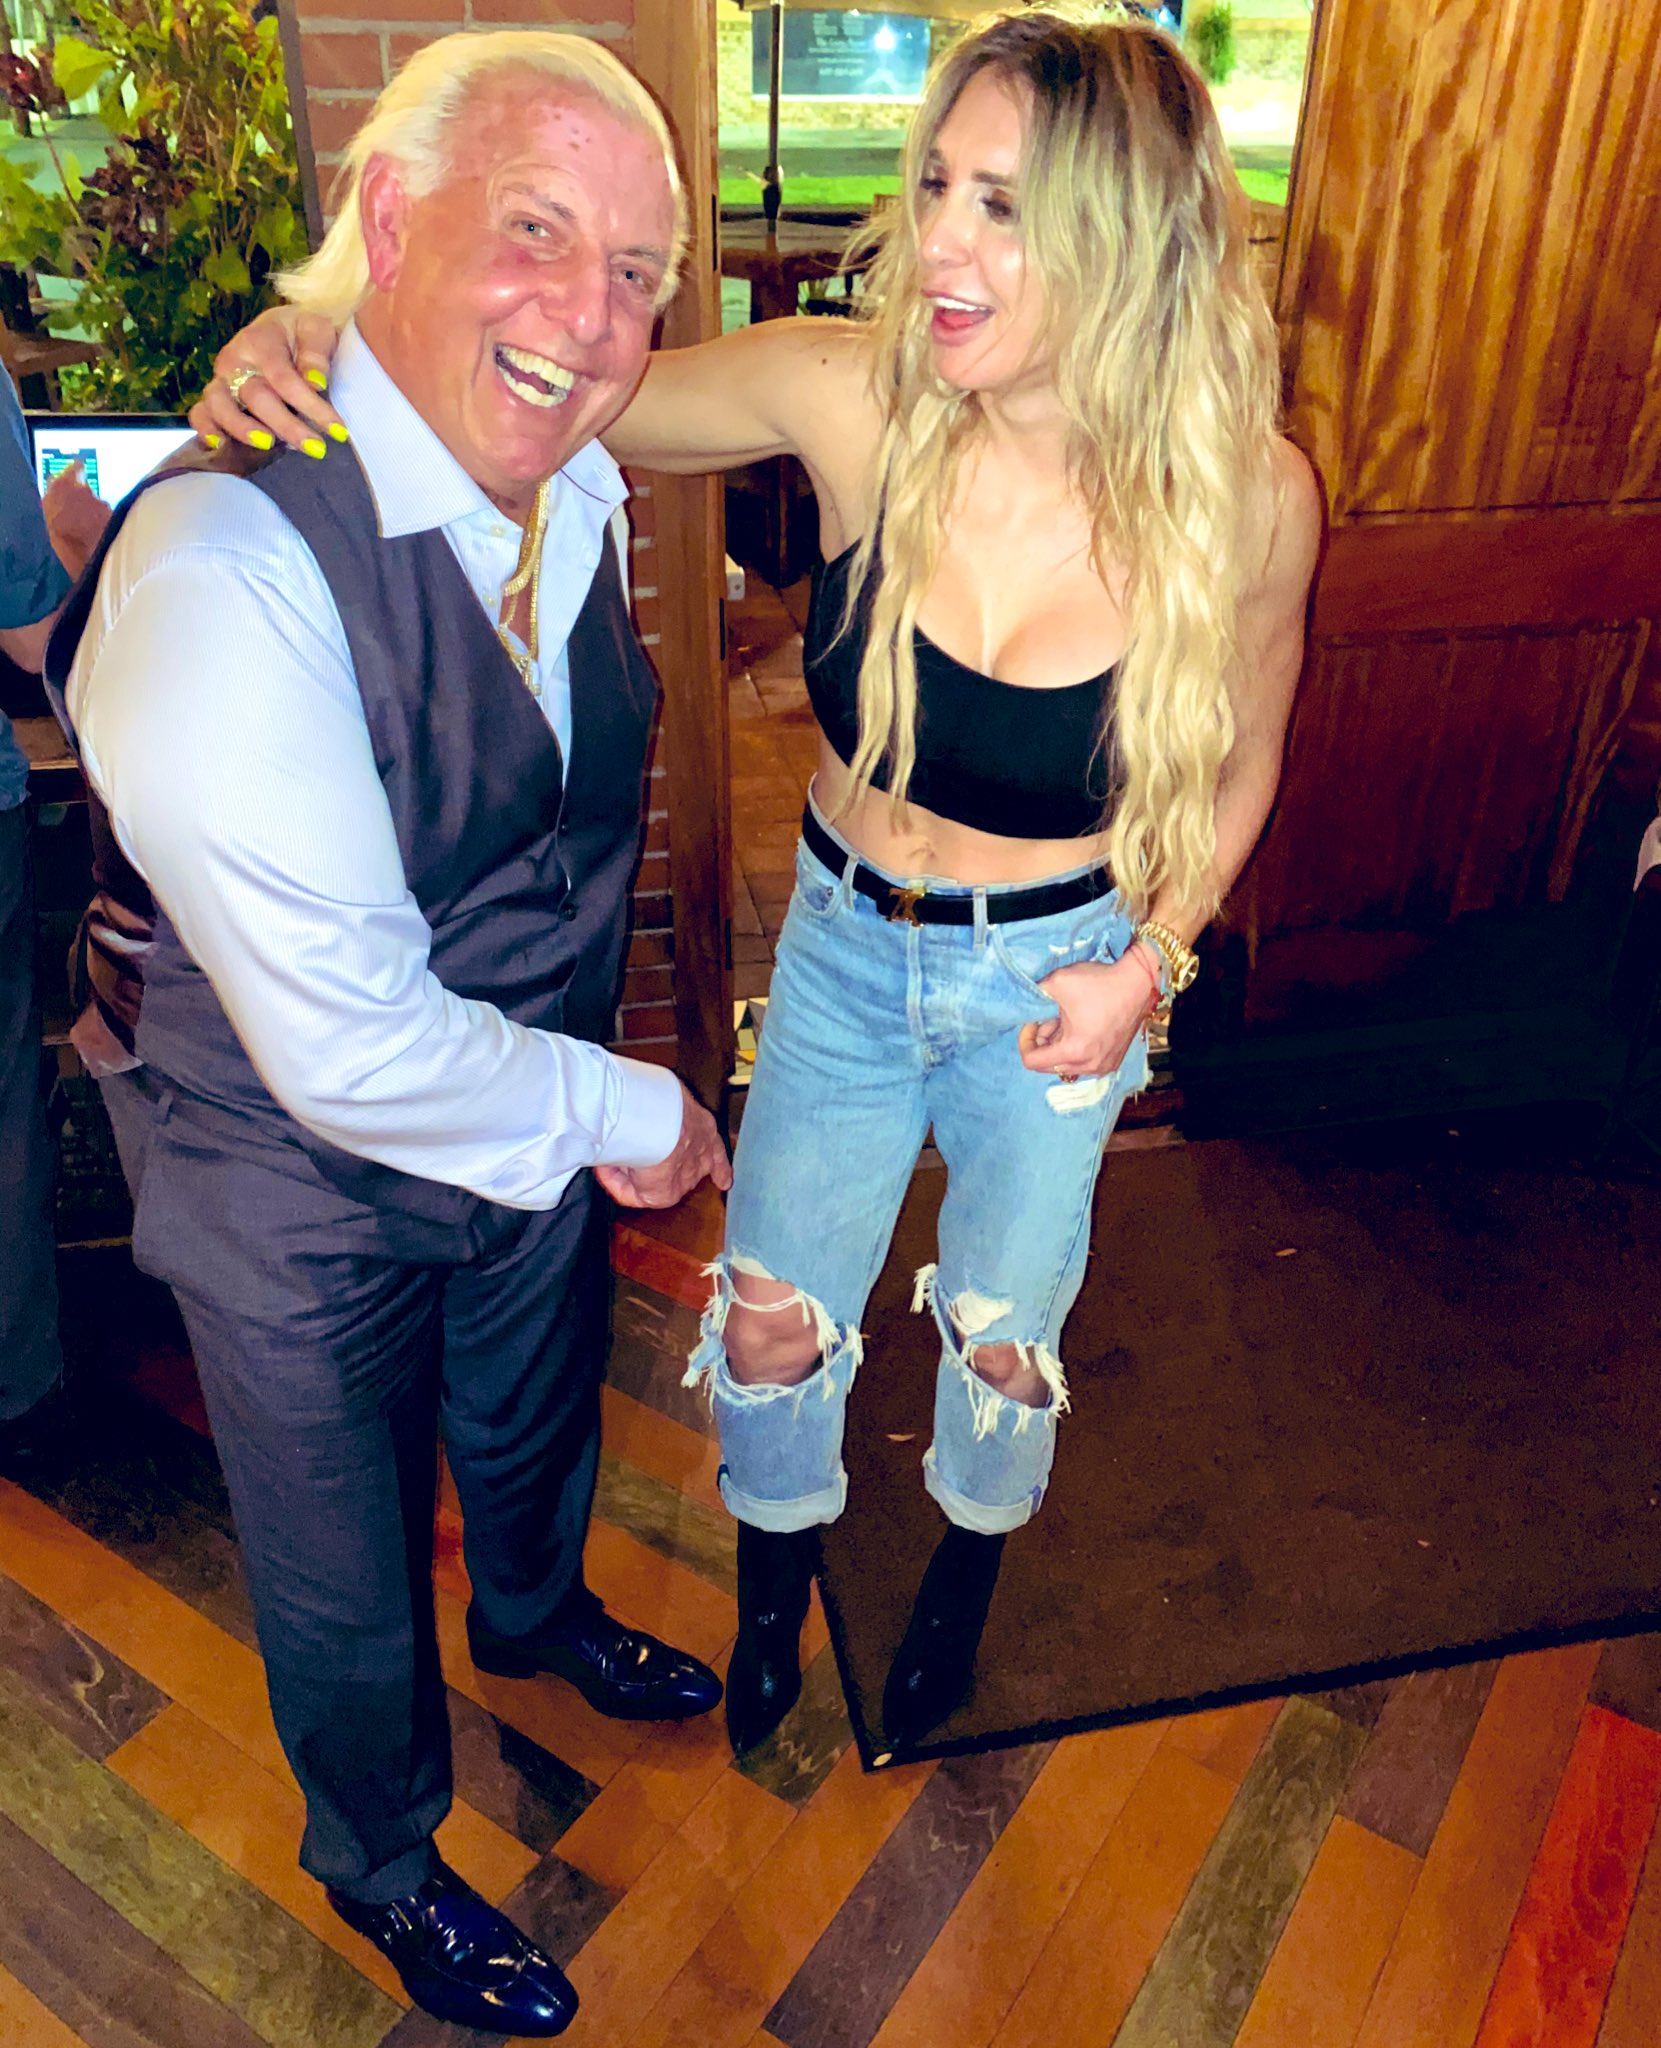 Wwe who dating is charlotte Every Current